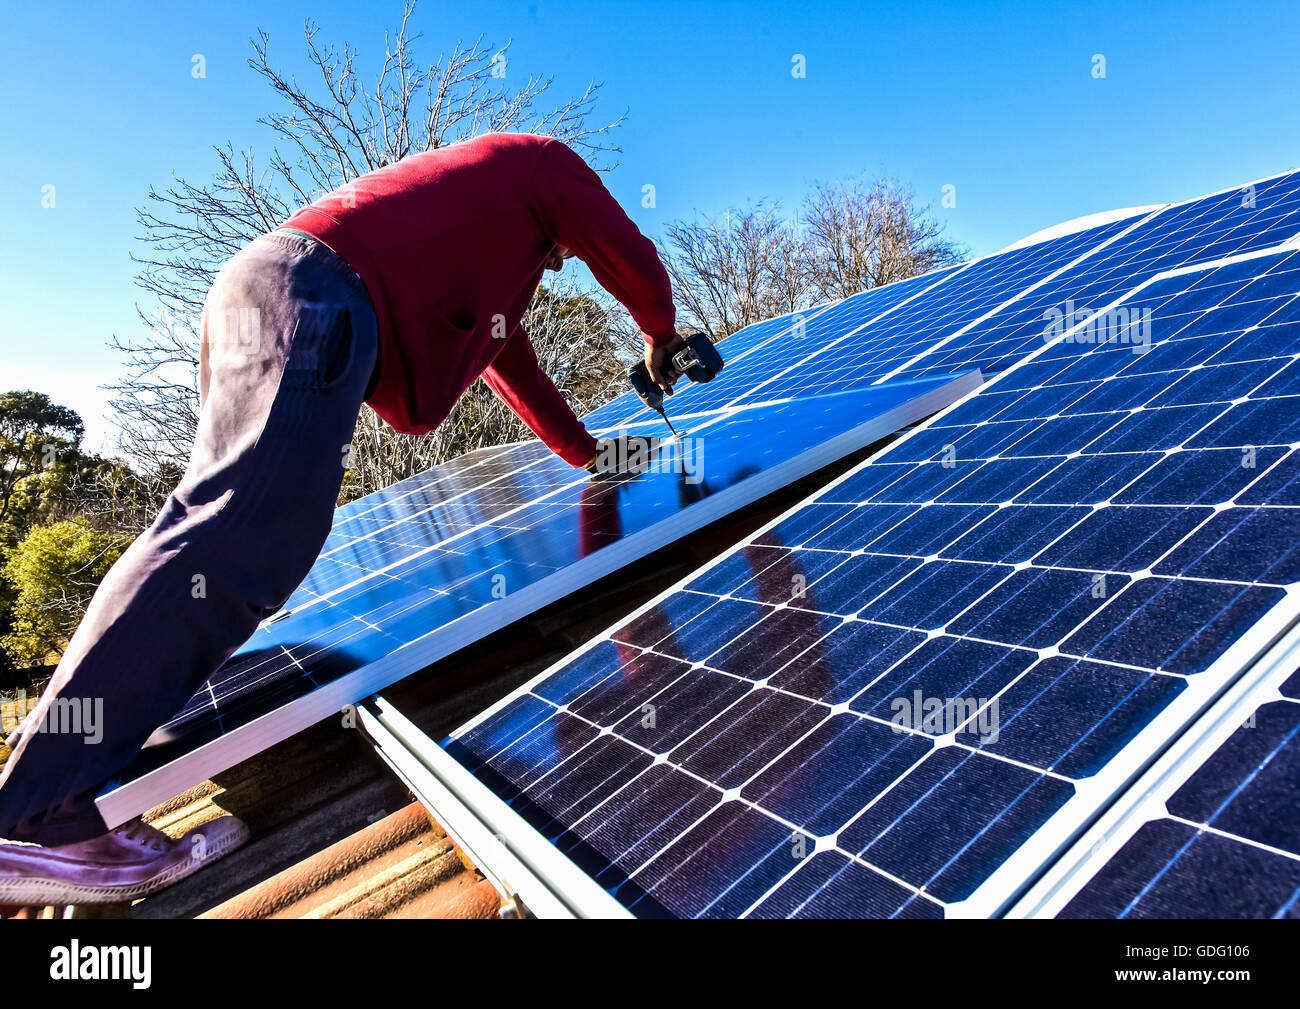 Fitting solar panels to roof of house - Stock Image